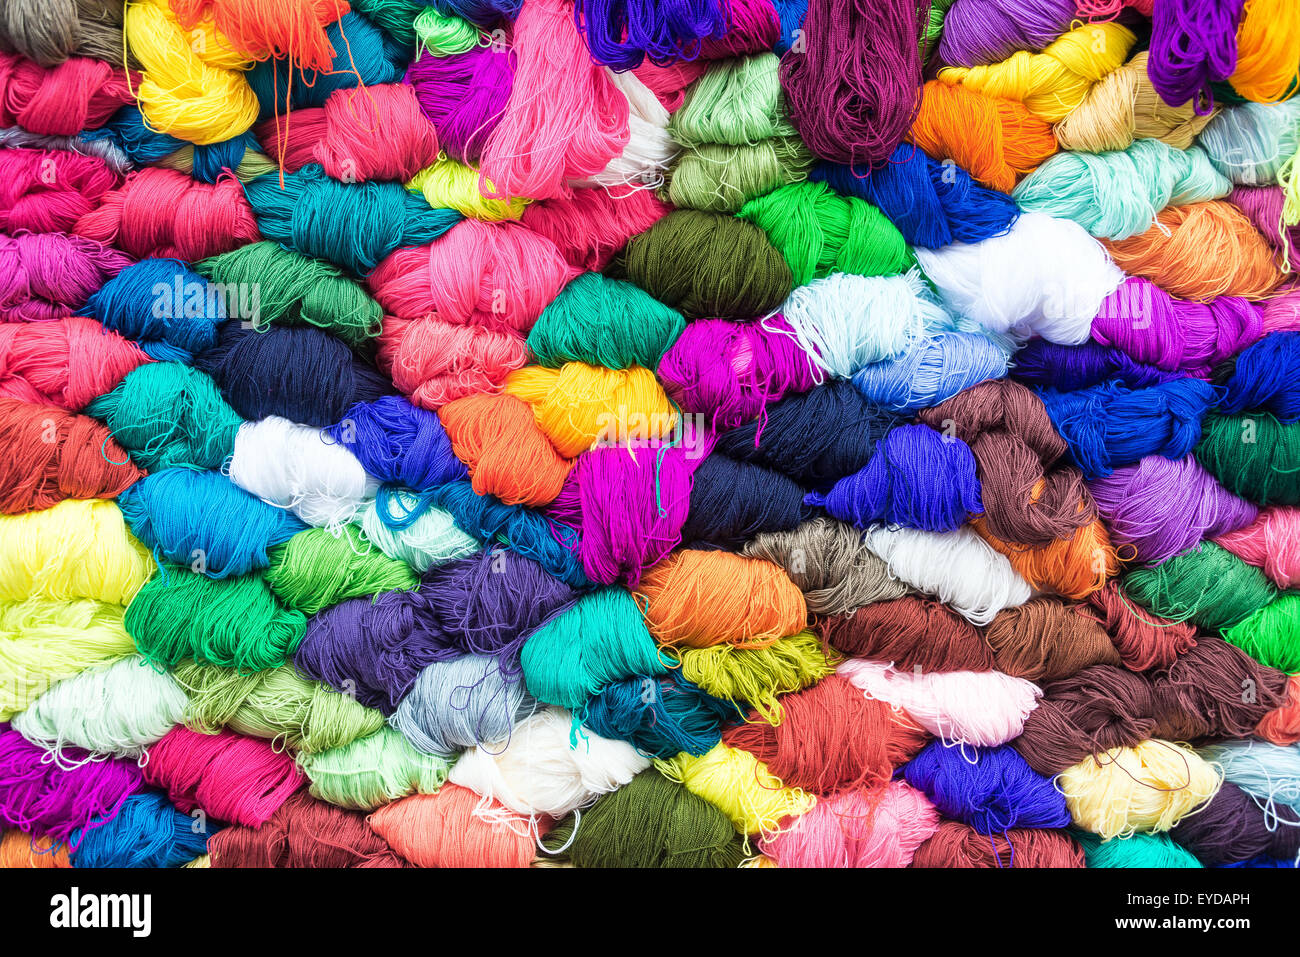 Colorful yarn for sale in the famous market in Otavalo, Ecuador - Stock Image